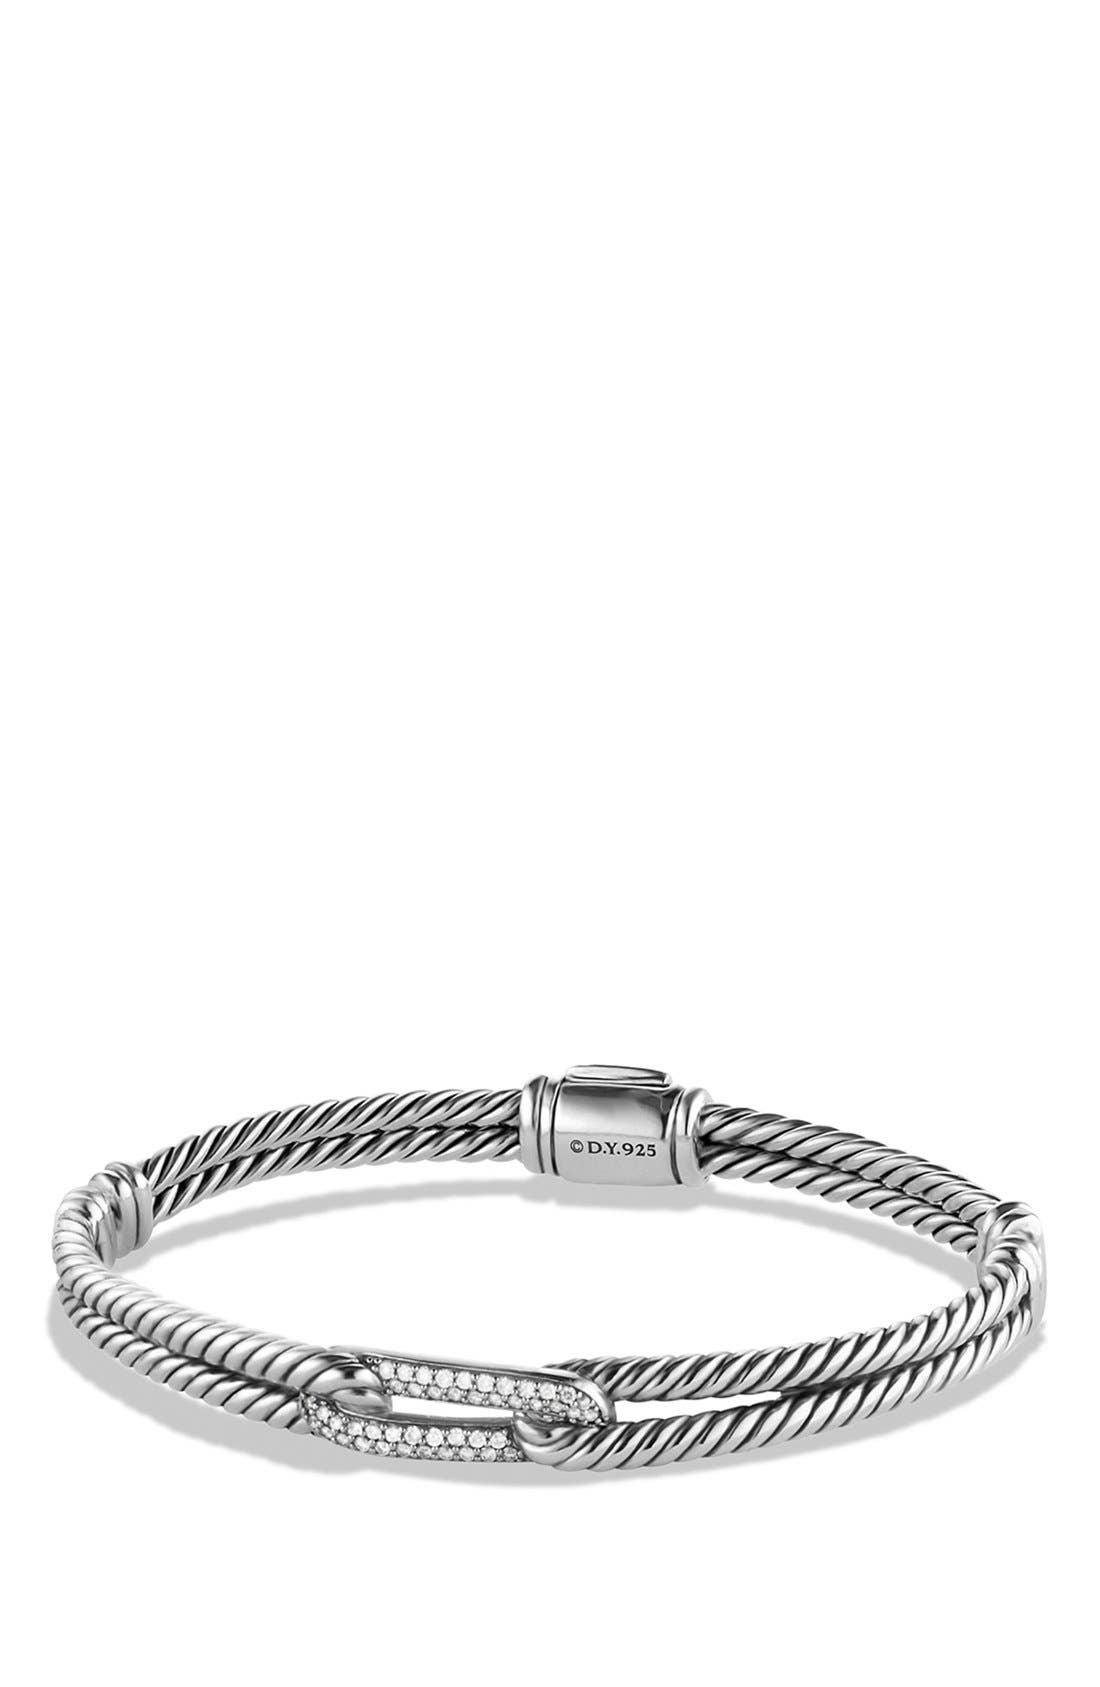 Petite Pavé 'Labyrinth' Mini Single Loop Bracelet with Diamonds in Gold,                         Main,                         color, Diamond/ Silver